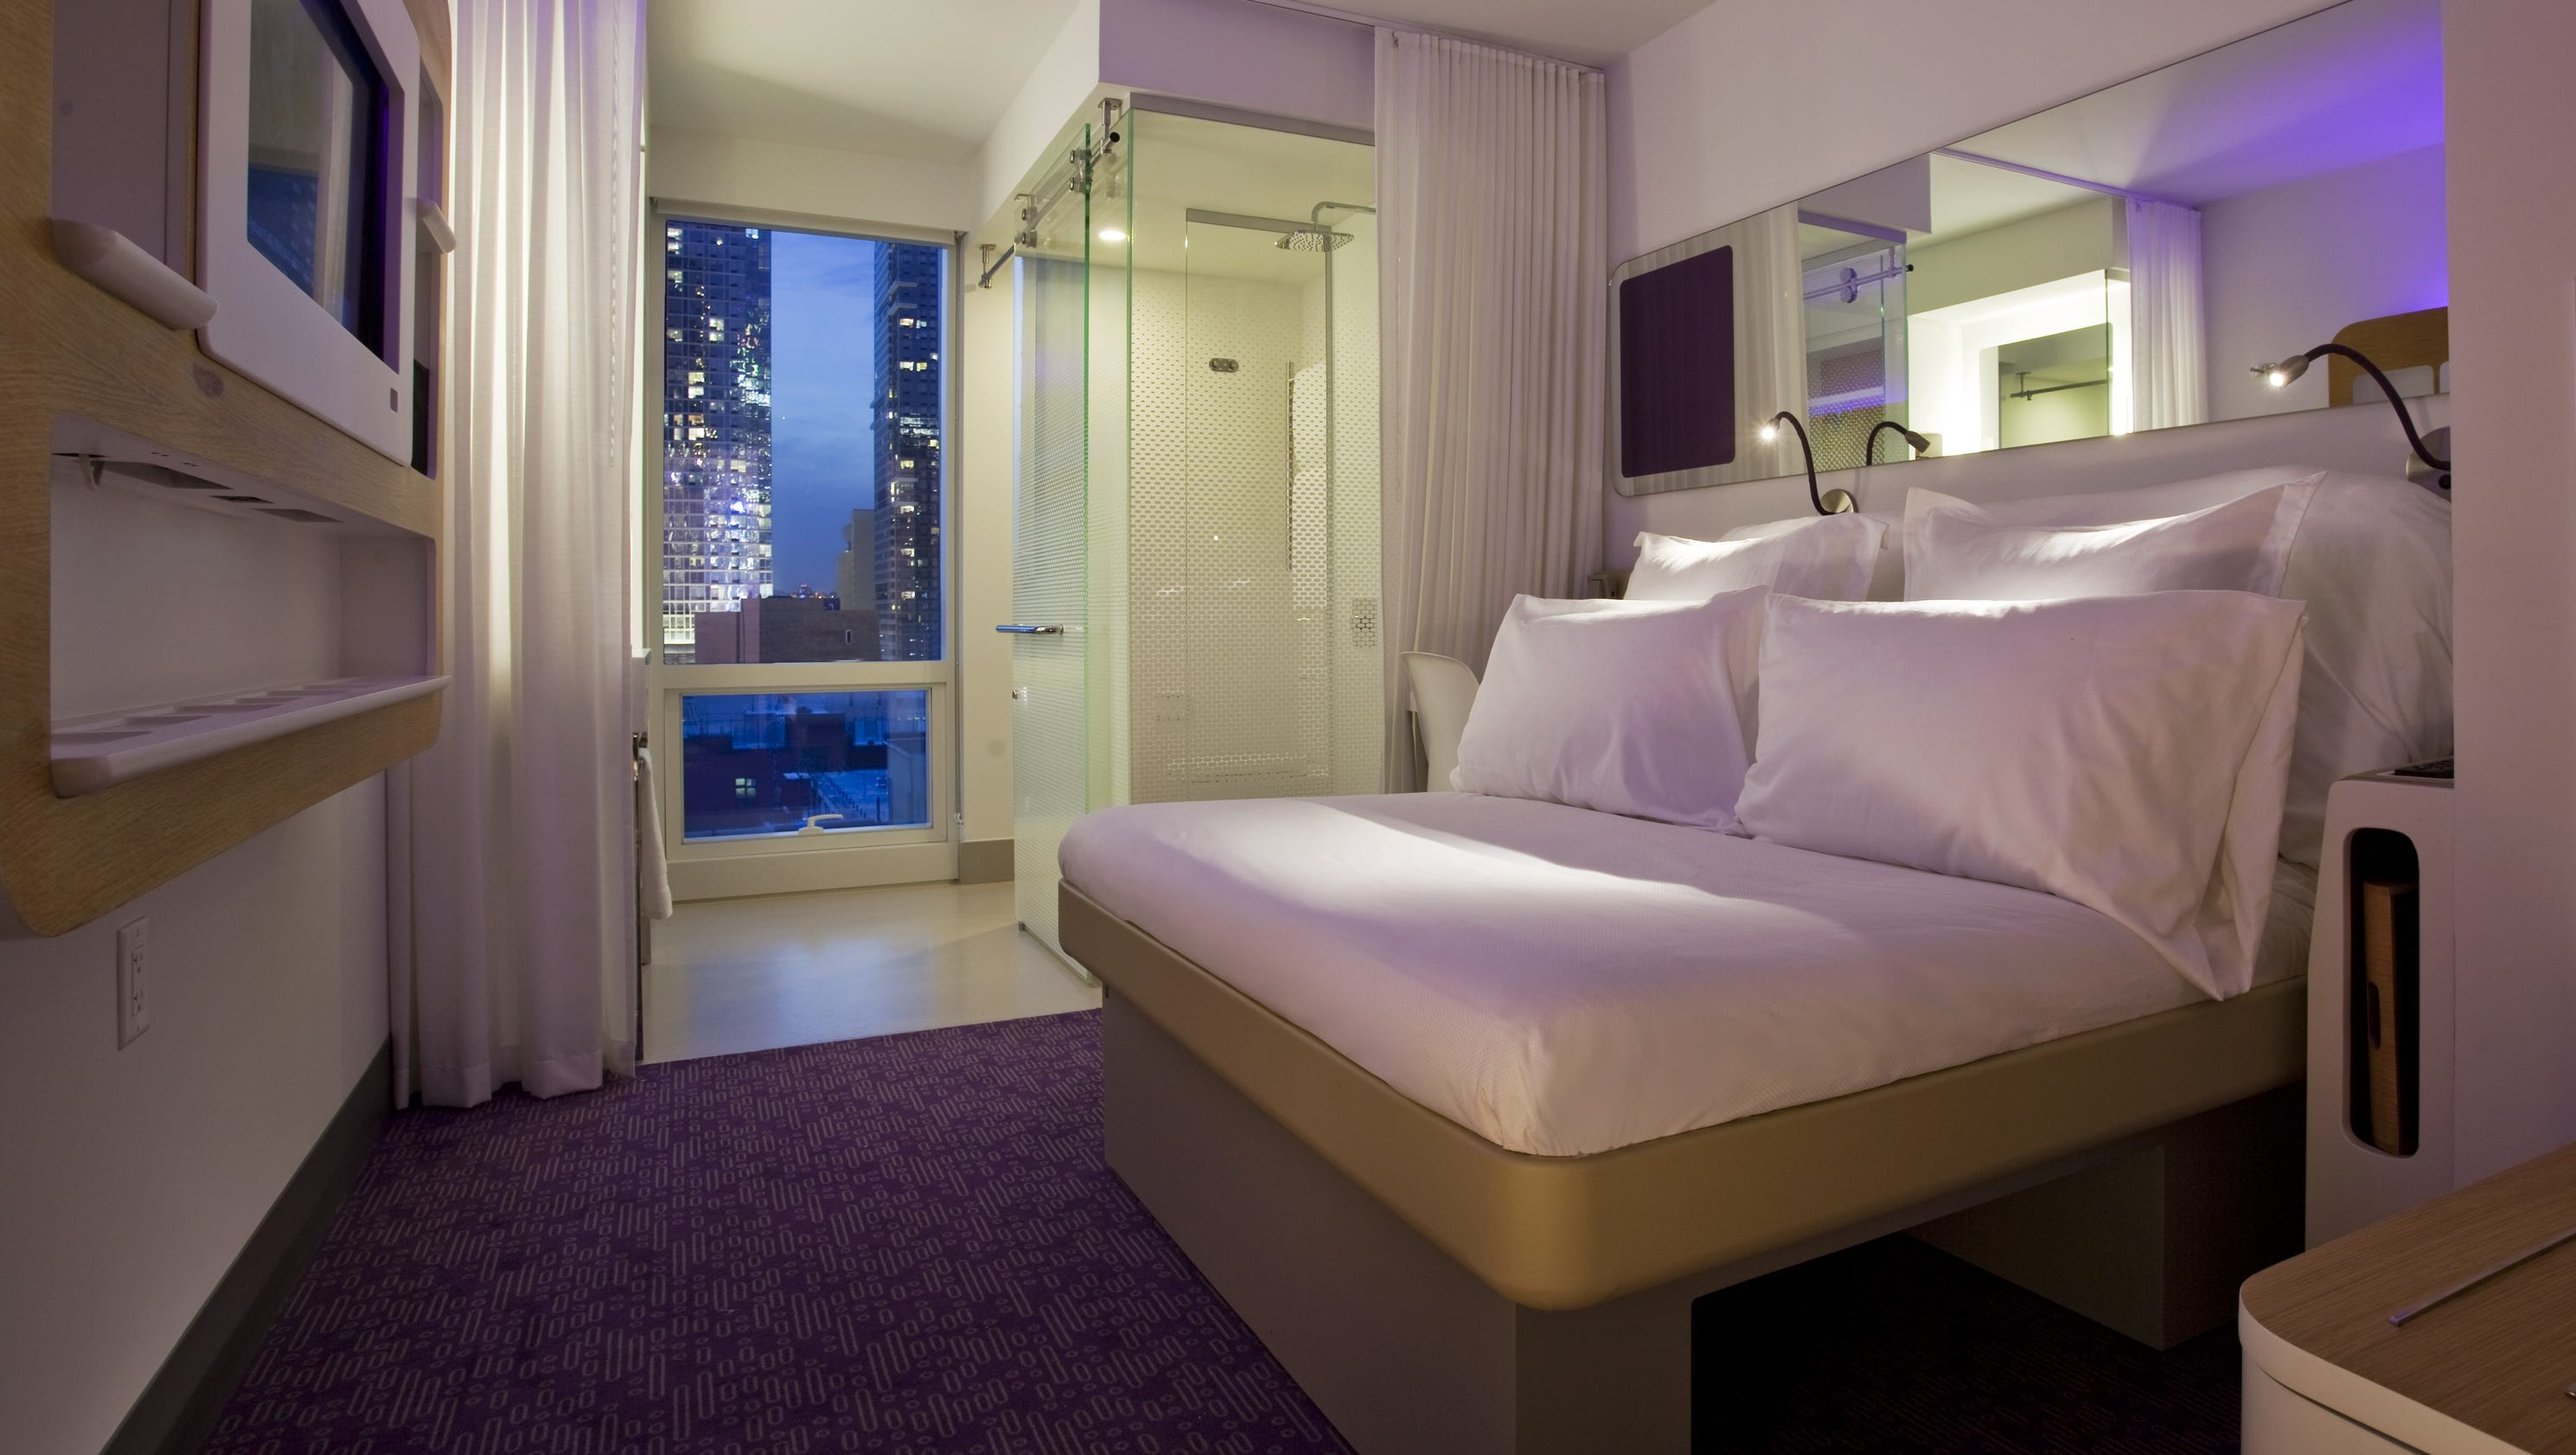 Rooms Review: The Incredible Shrinking Hotel Room